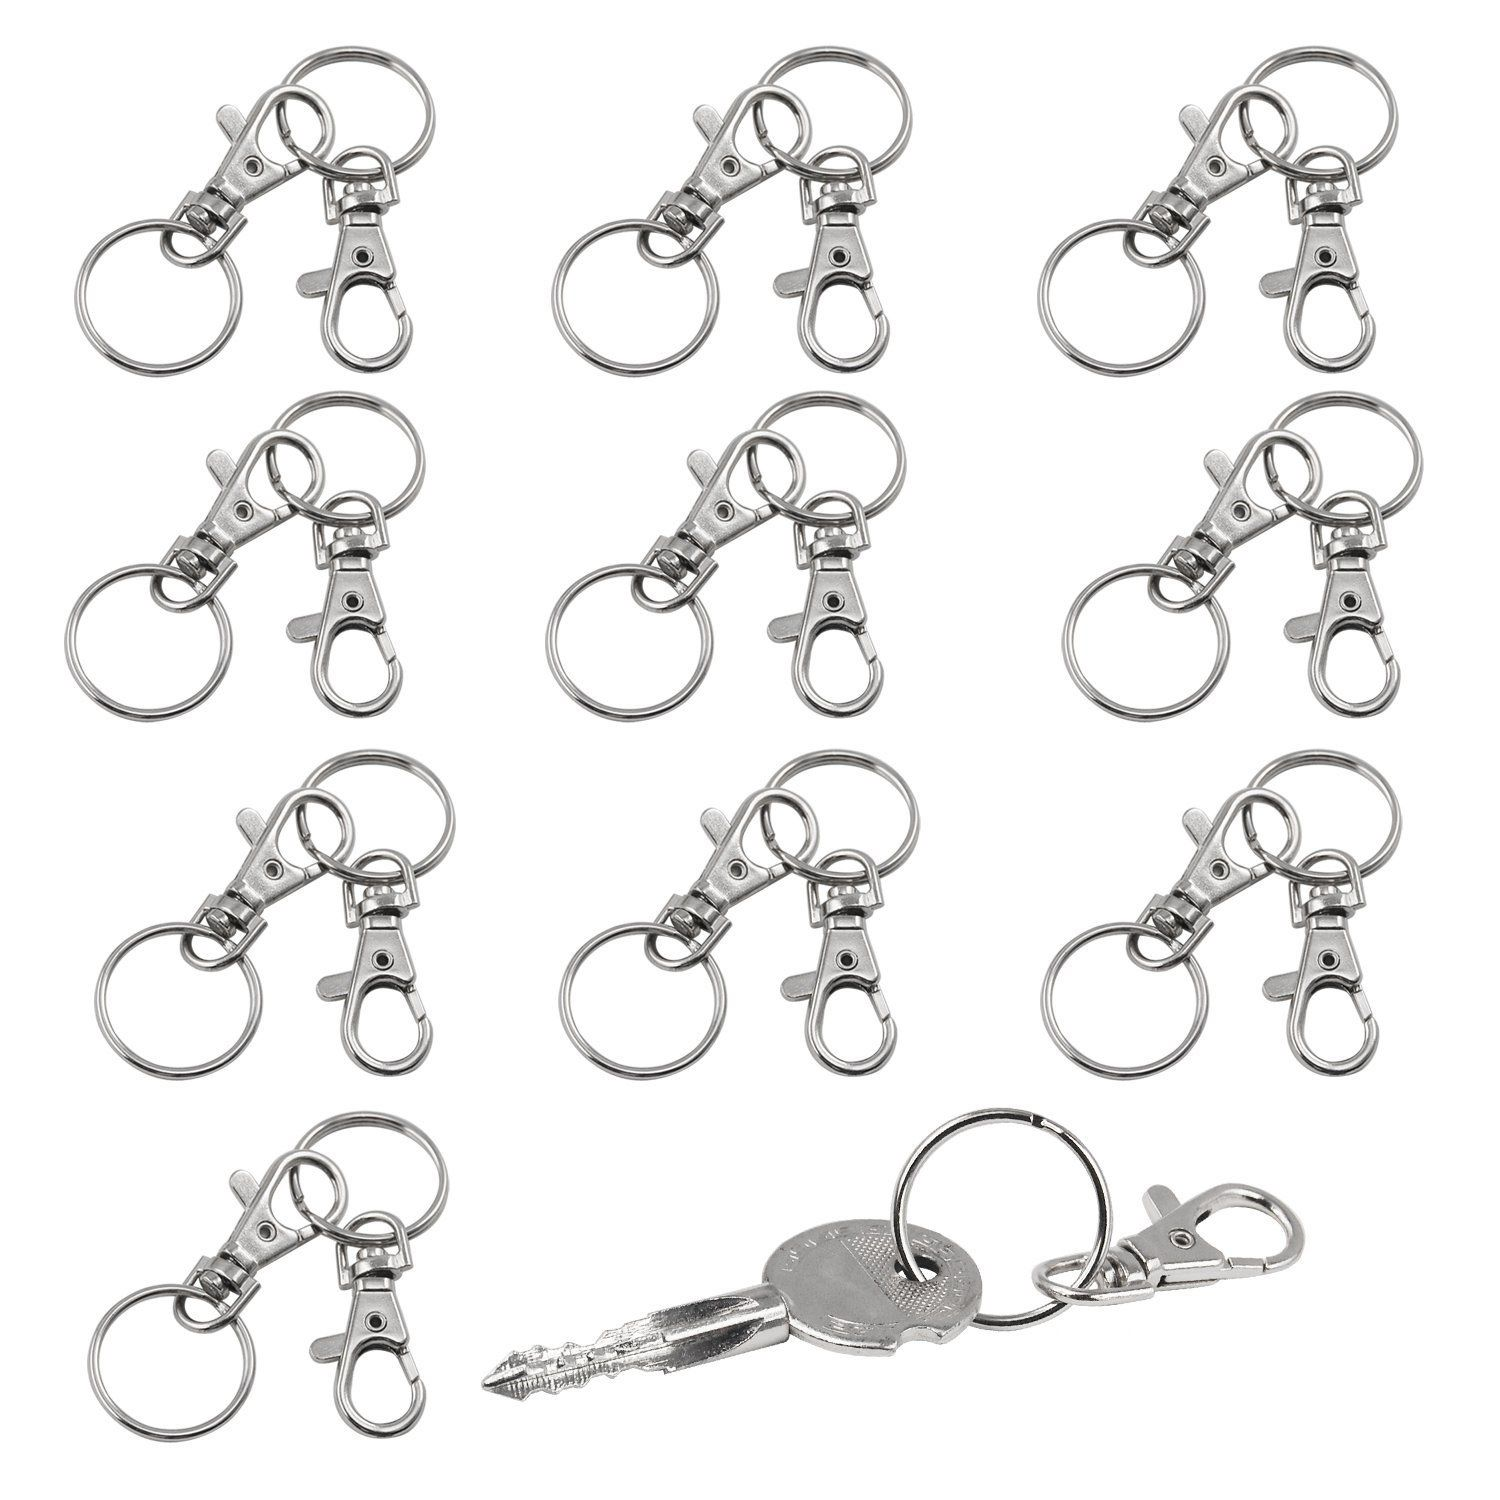 DSGS 20 Small Removable Screw Caps For Key Rings - Carabiner Key Chain - Cosmetics & Jewelery